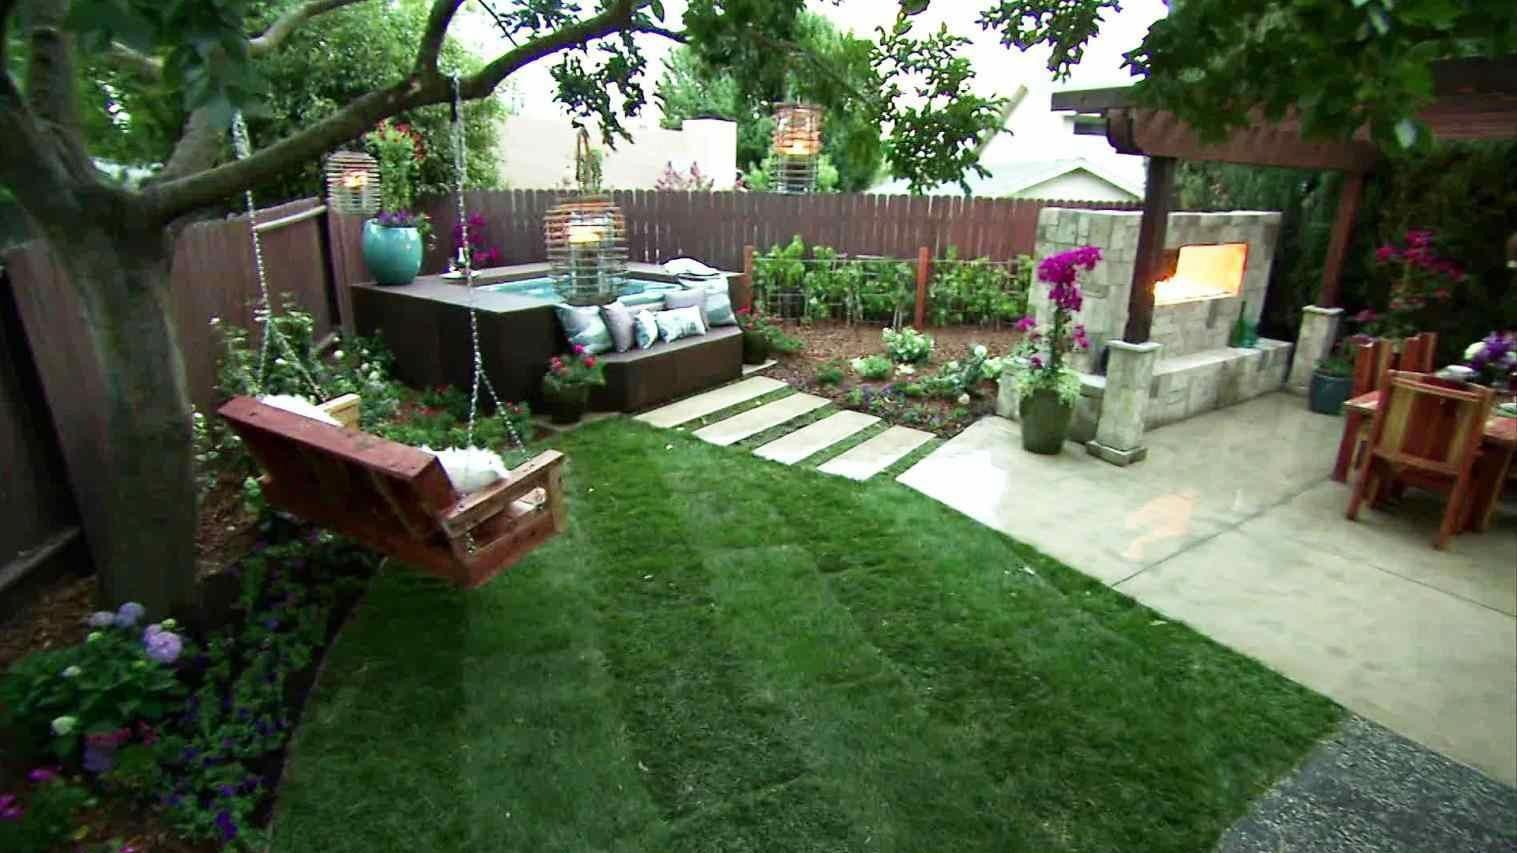 Backyard Landscaping Ideas With Hot Tub Fleagorcom | Hot tub ...